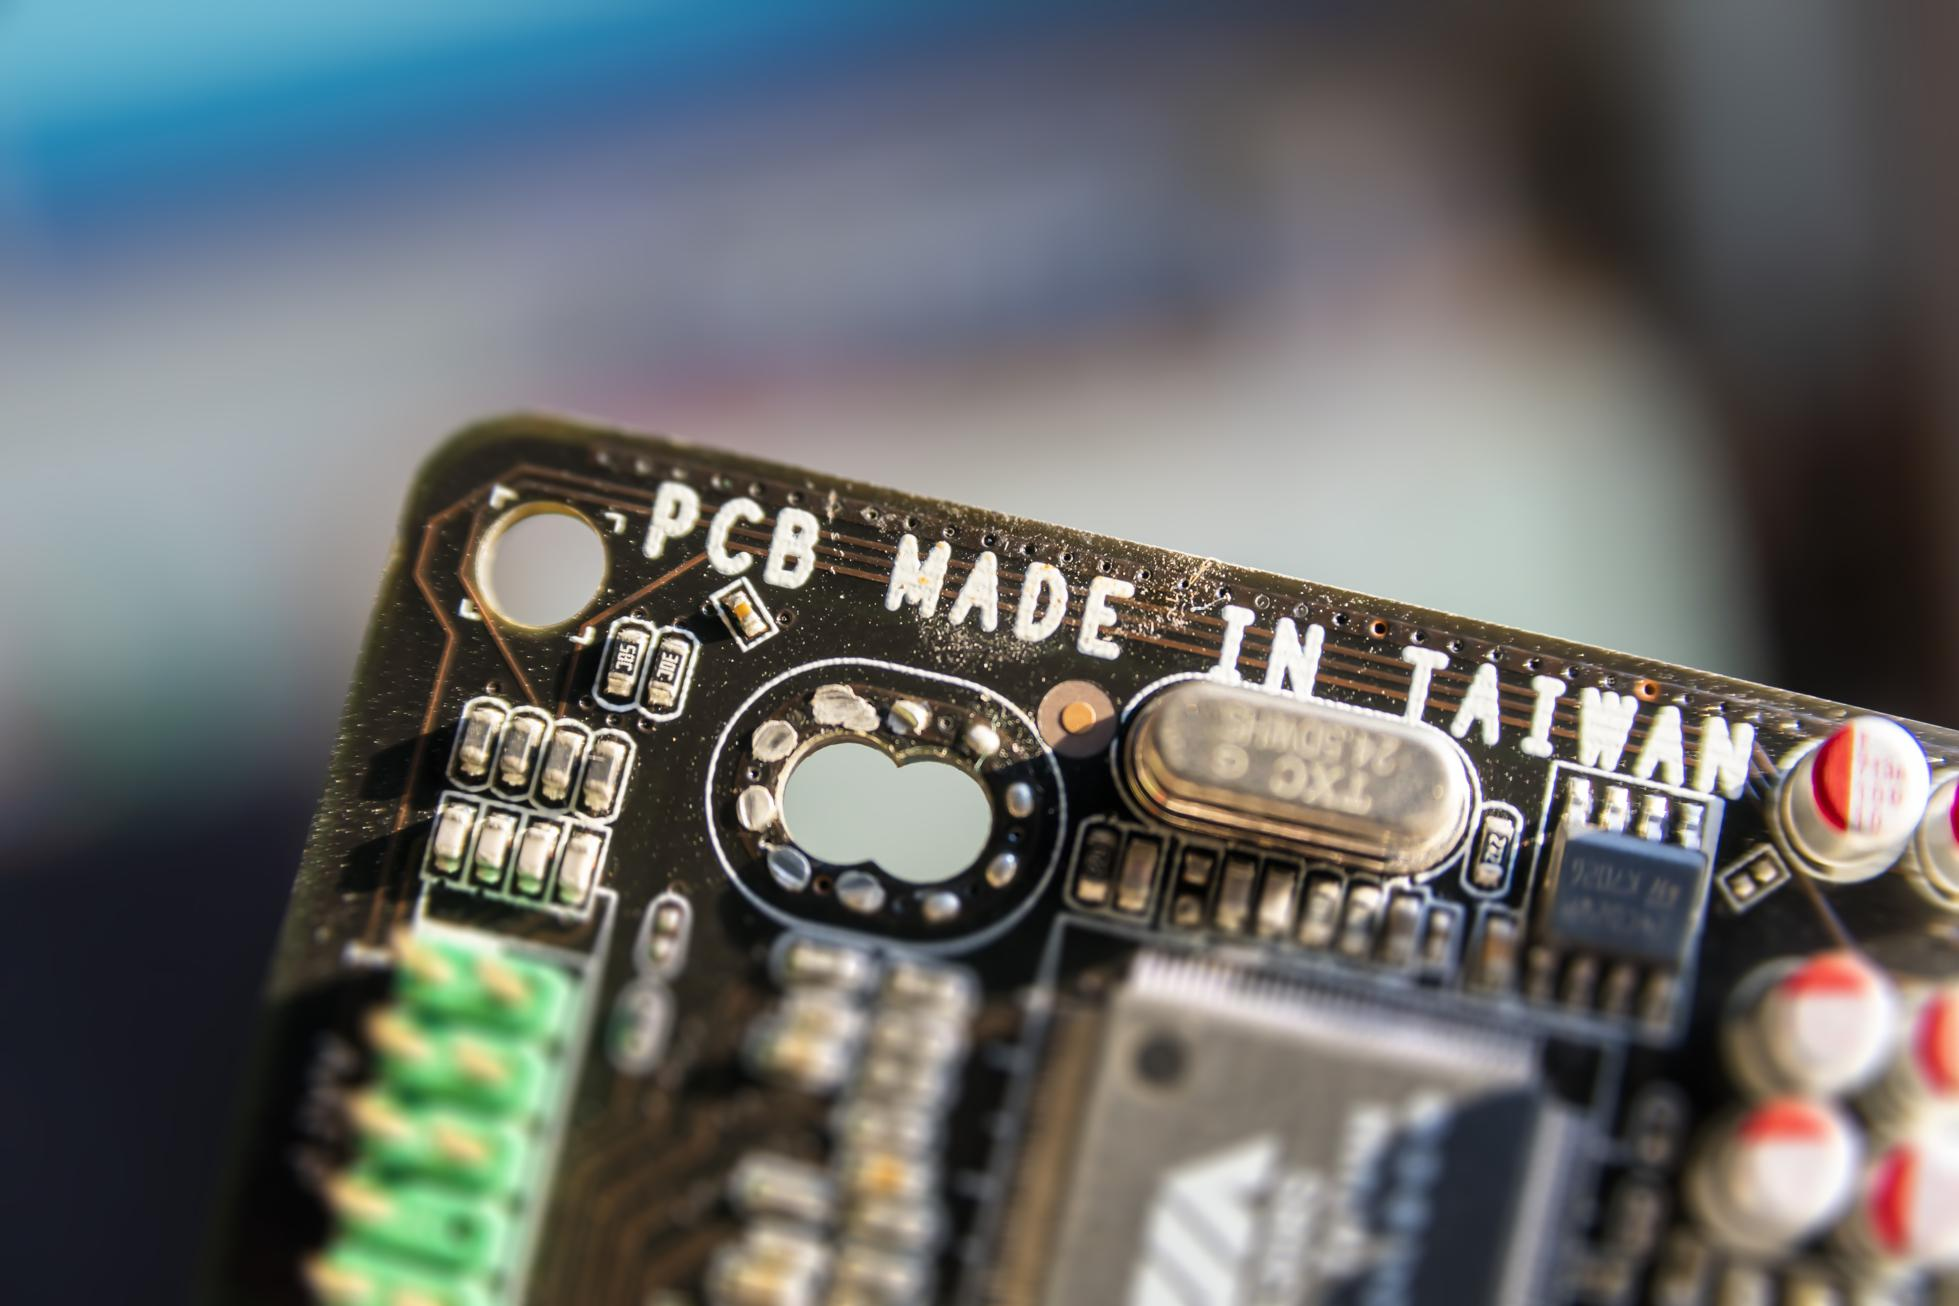 Manufacturing concept. Close up computer mother board.